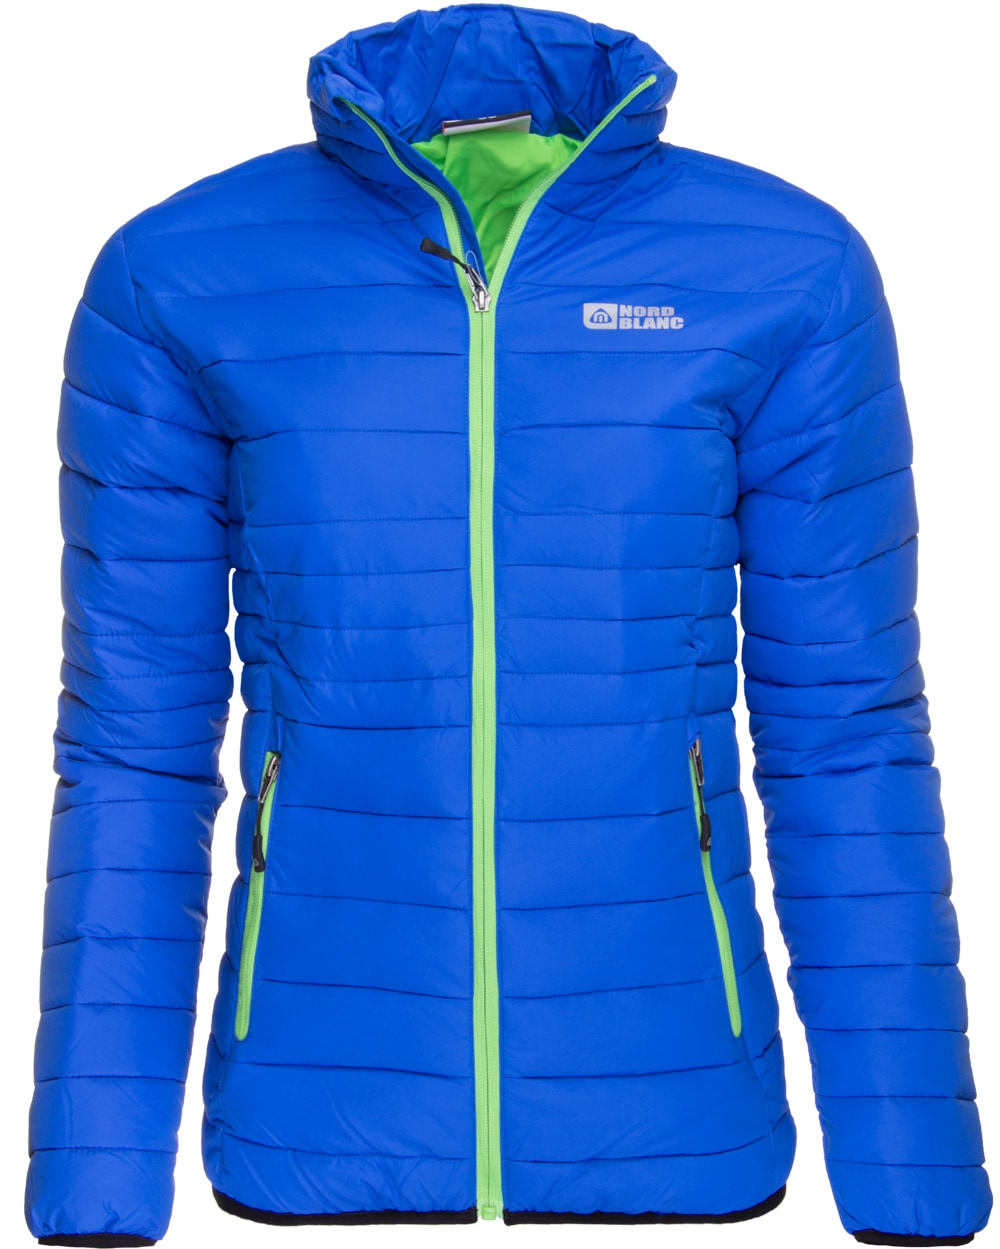 Winter jacket NORDBLANC Transpose - NBWJL5446